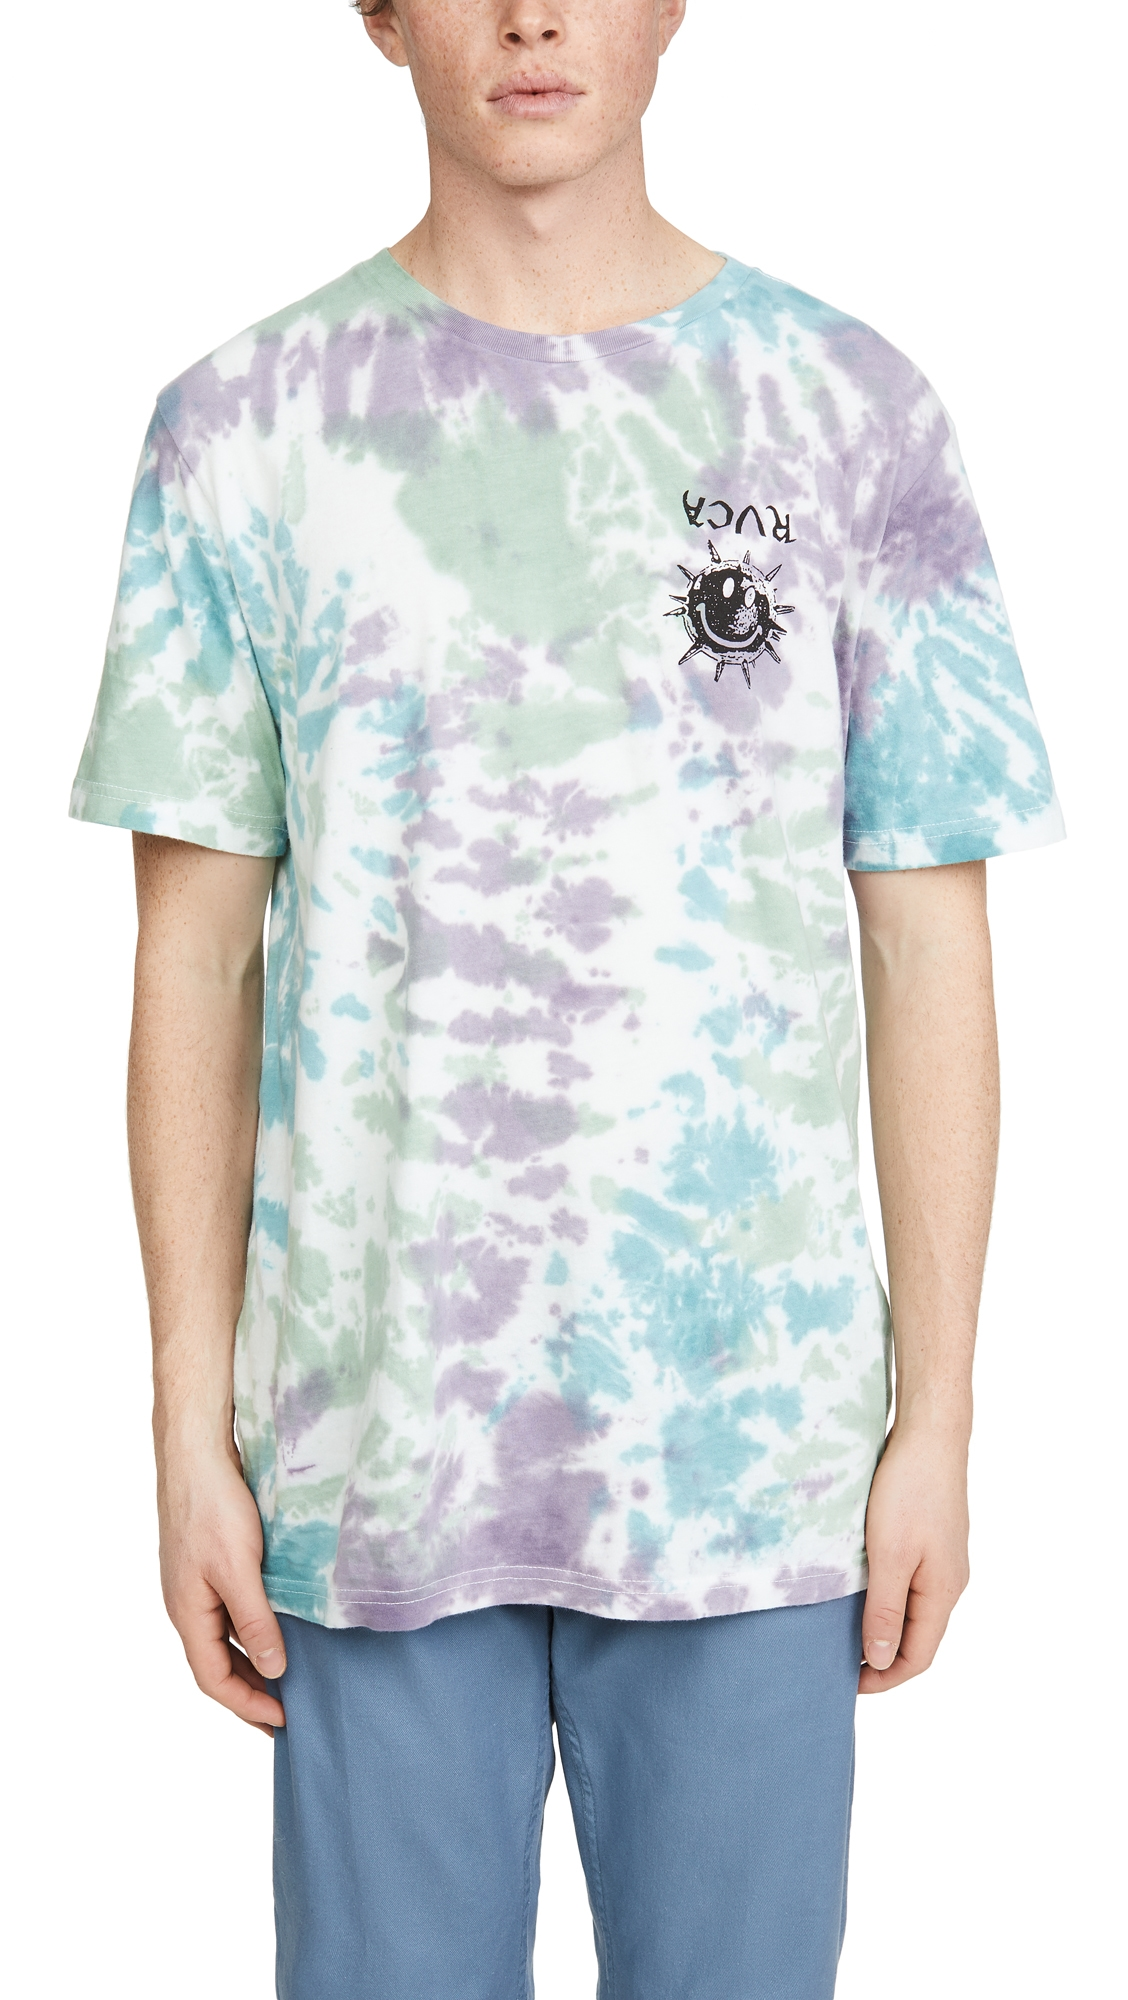 Rvca T-shirts TIE DYE MORNING STAR SHORT SLEEVE SHIRT